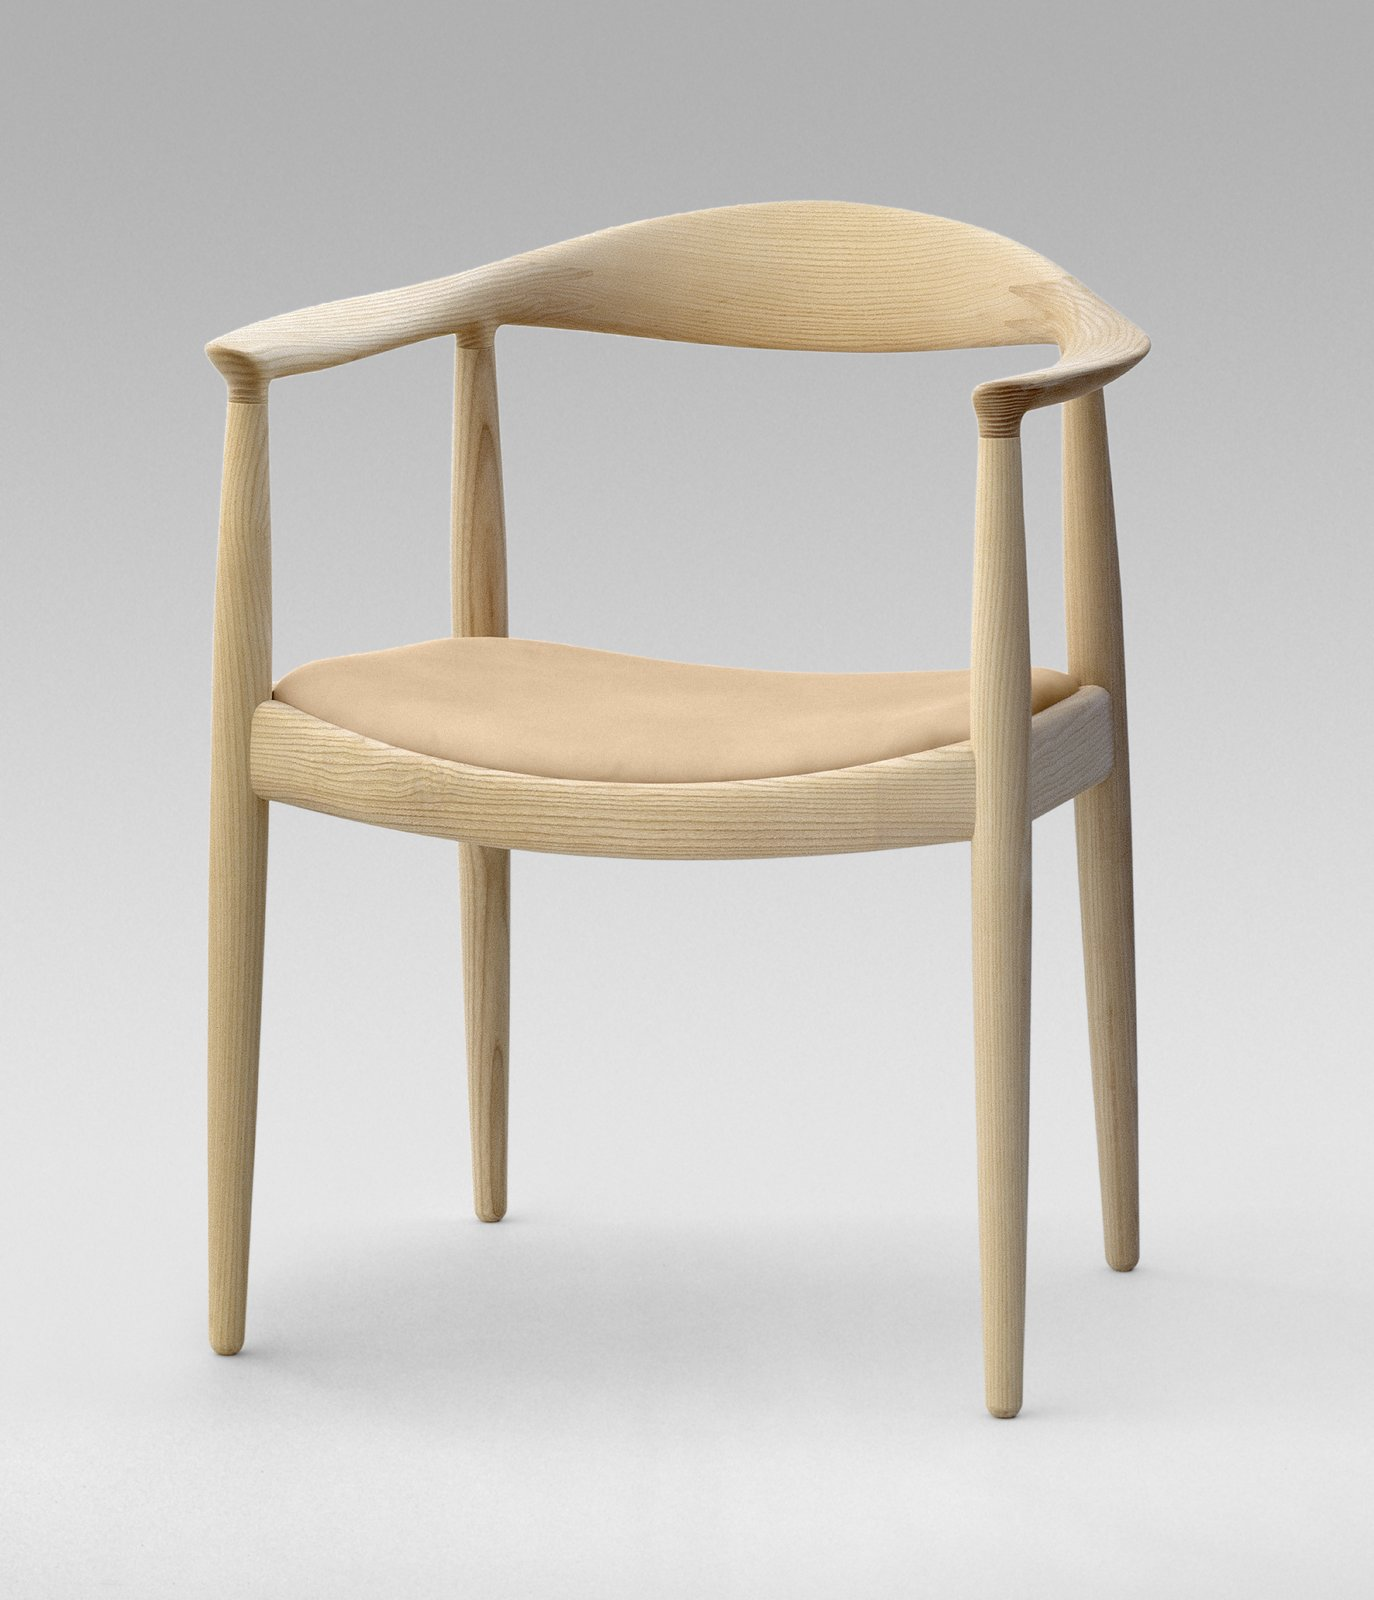 Wegner Stuhl Photo 2 Of 9 In 8 Iconic Chairs By Hans Wegner - Dwell